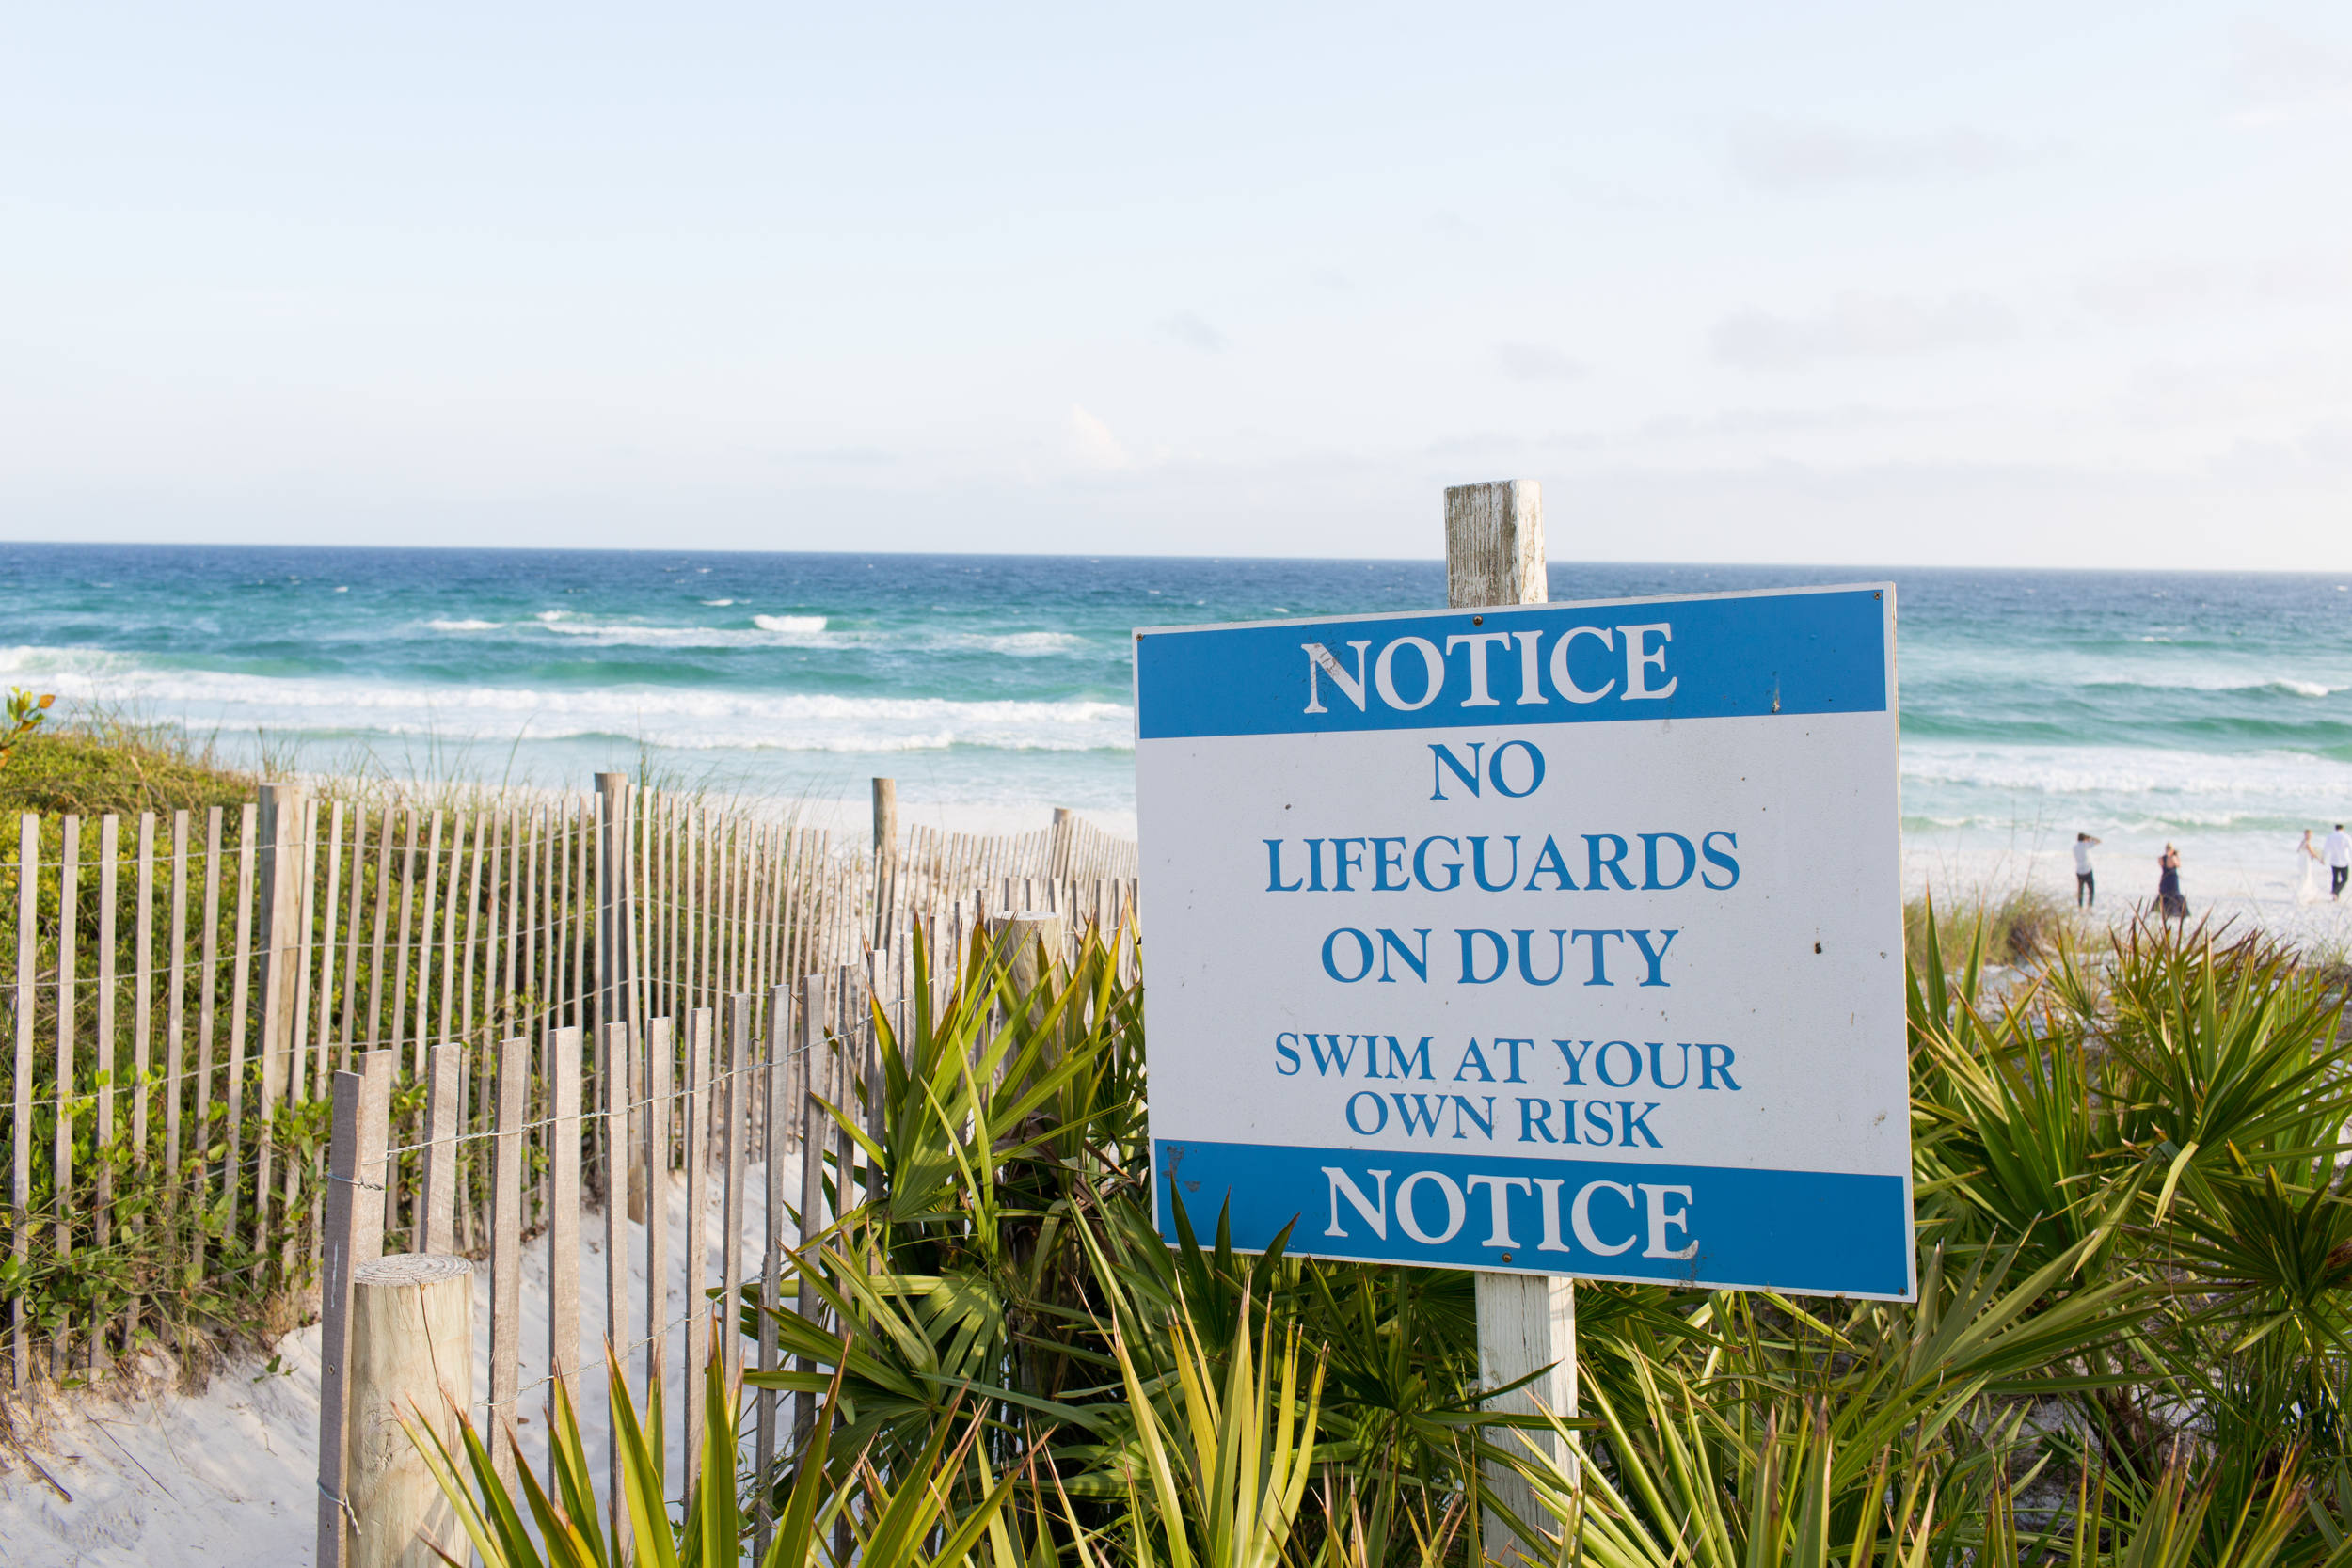 No Lifeguards on Duty sign at beach in Seaside, Florida